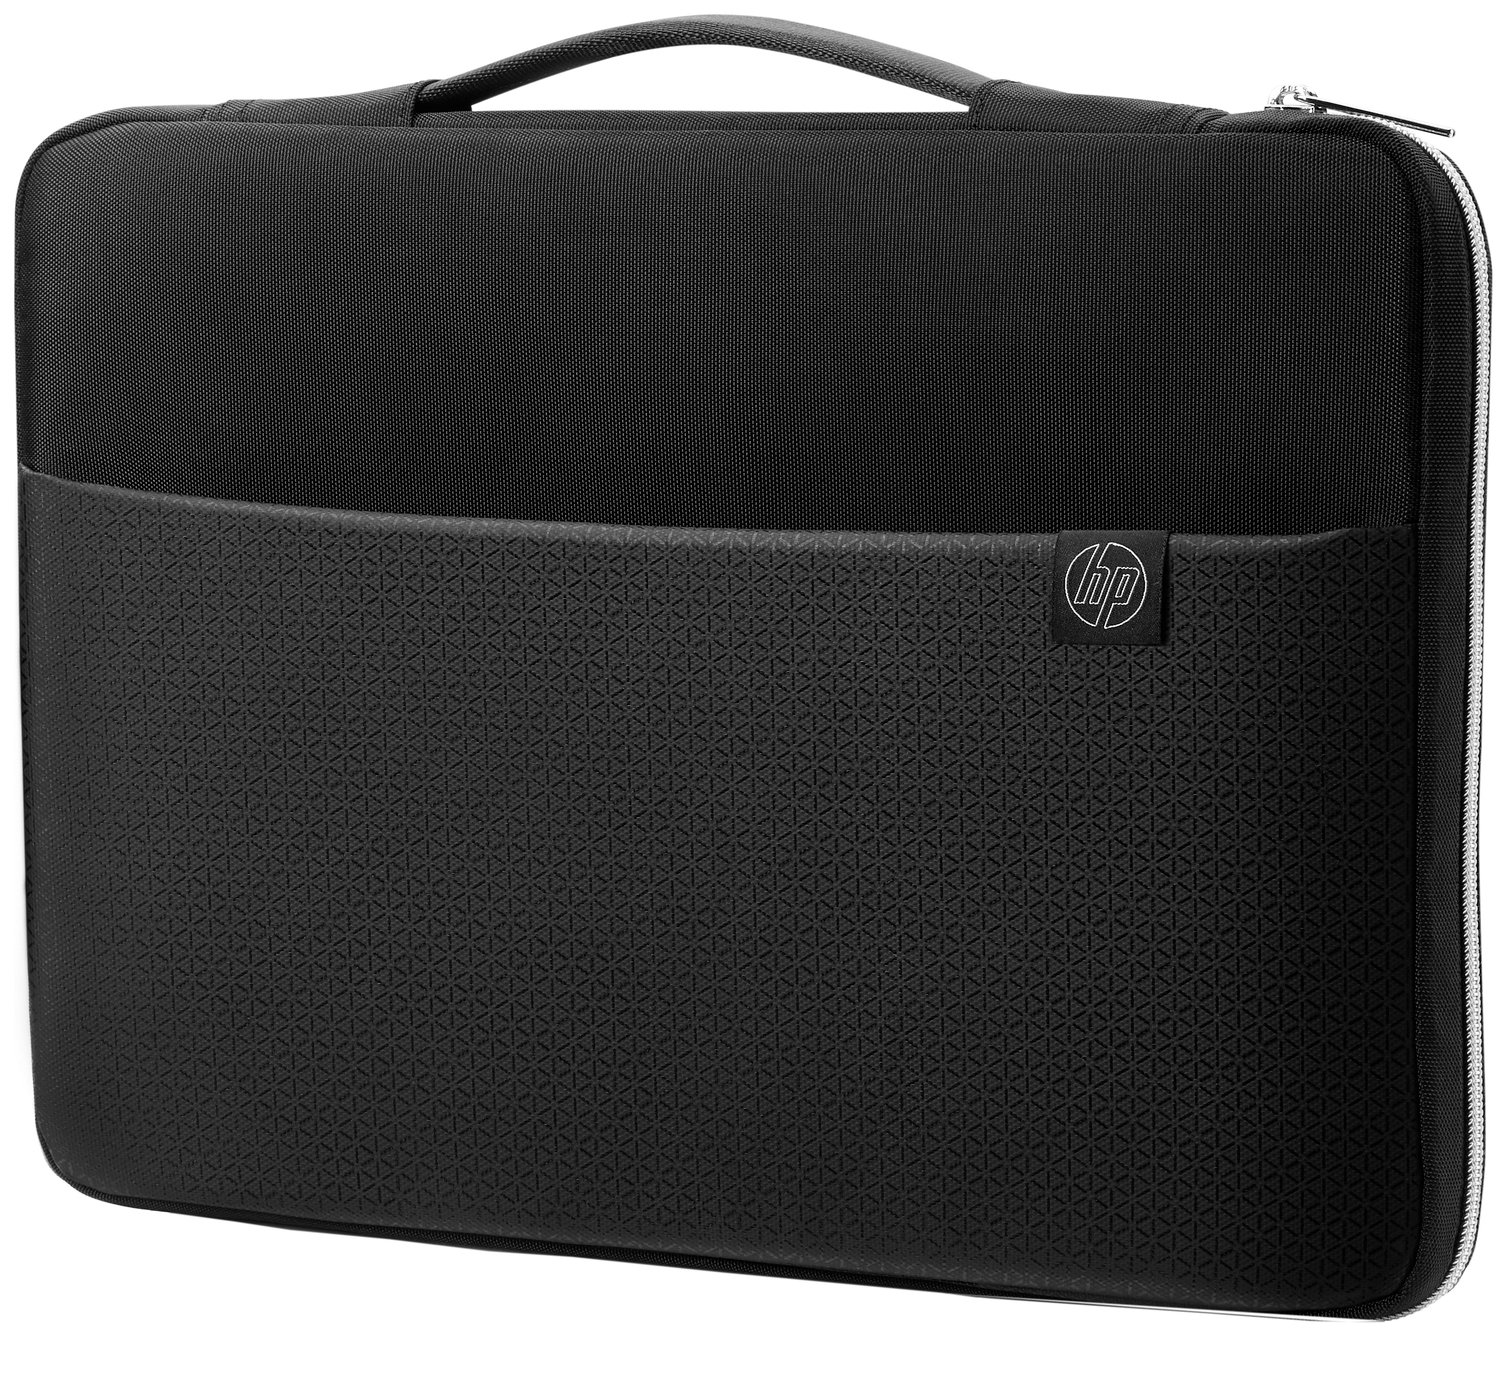 HP 15.6 Inch Laptop Sleeve - Black and Silver